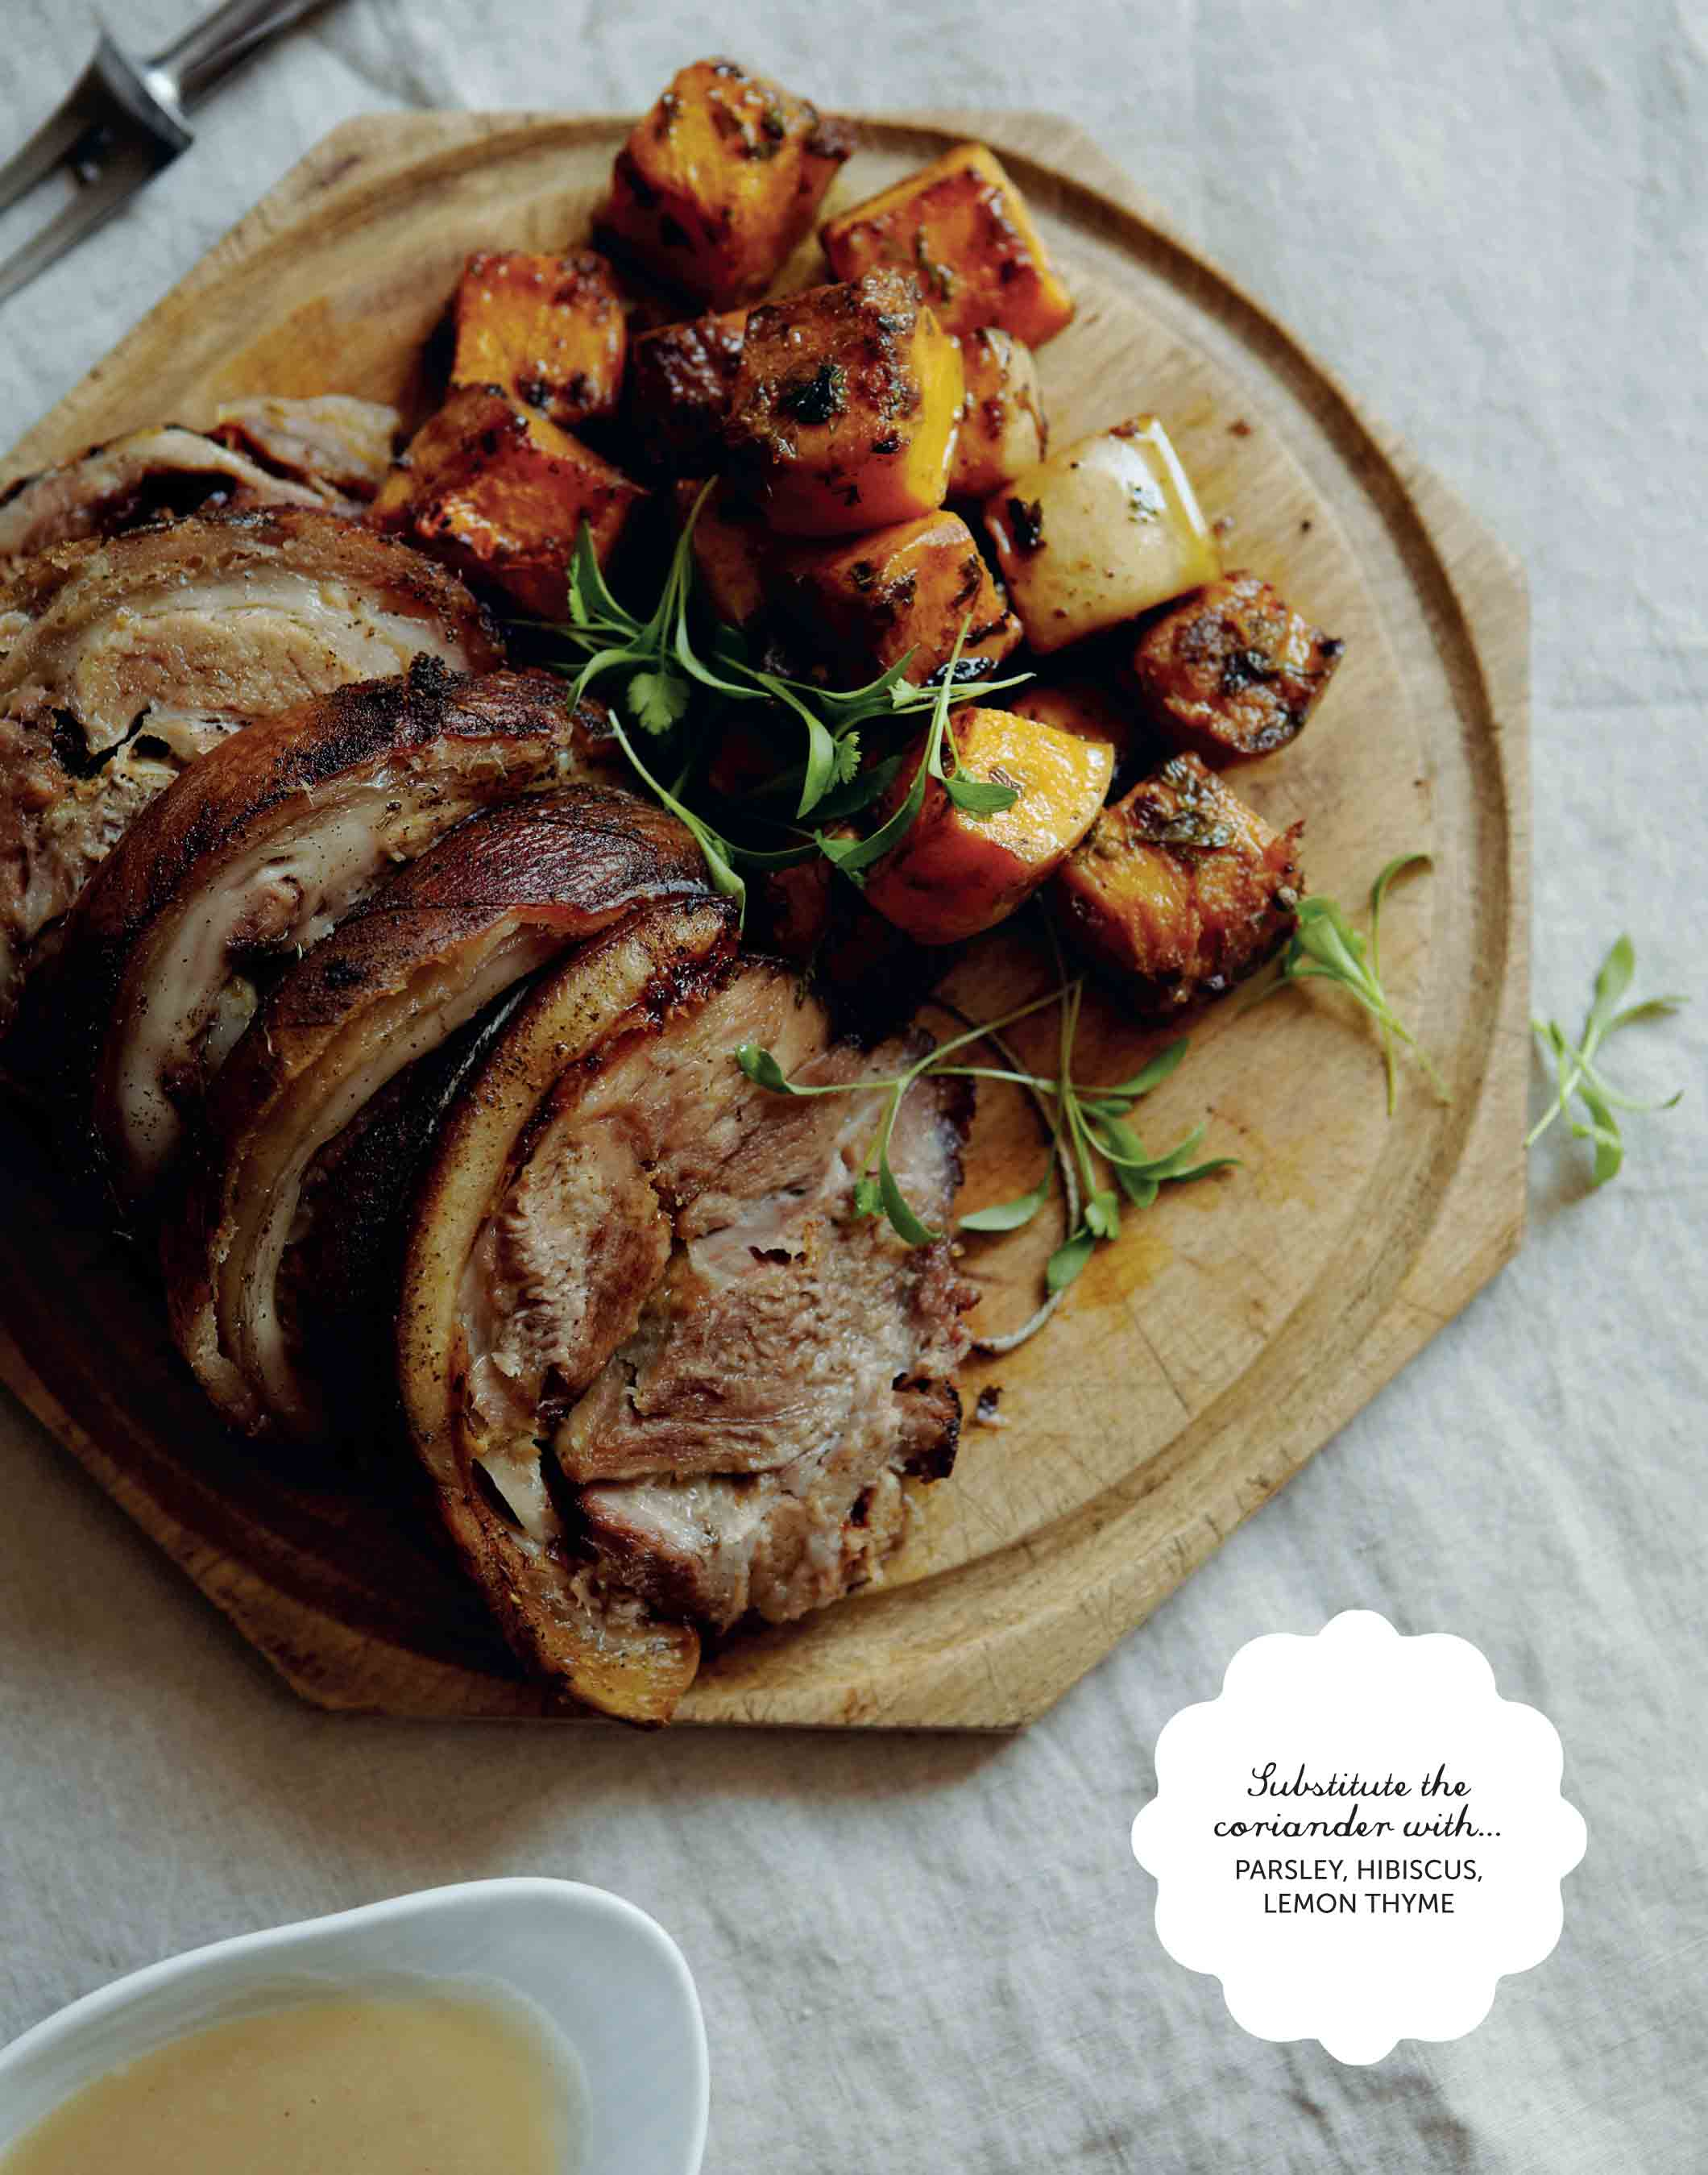 Eastern-inspired slow roast pork